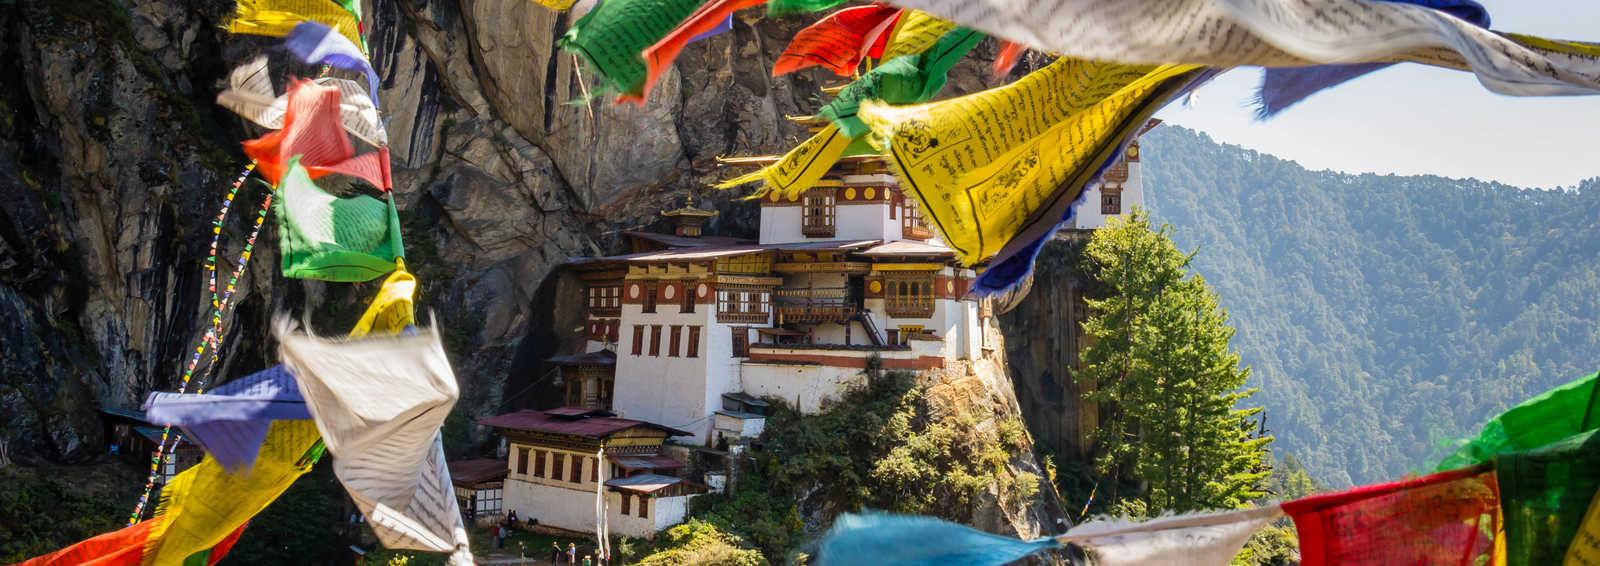 3 nights 4 days bhutan tour from nepal